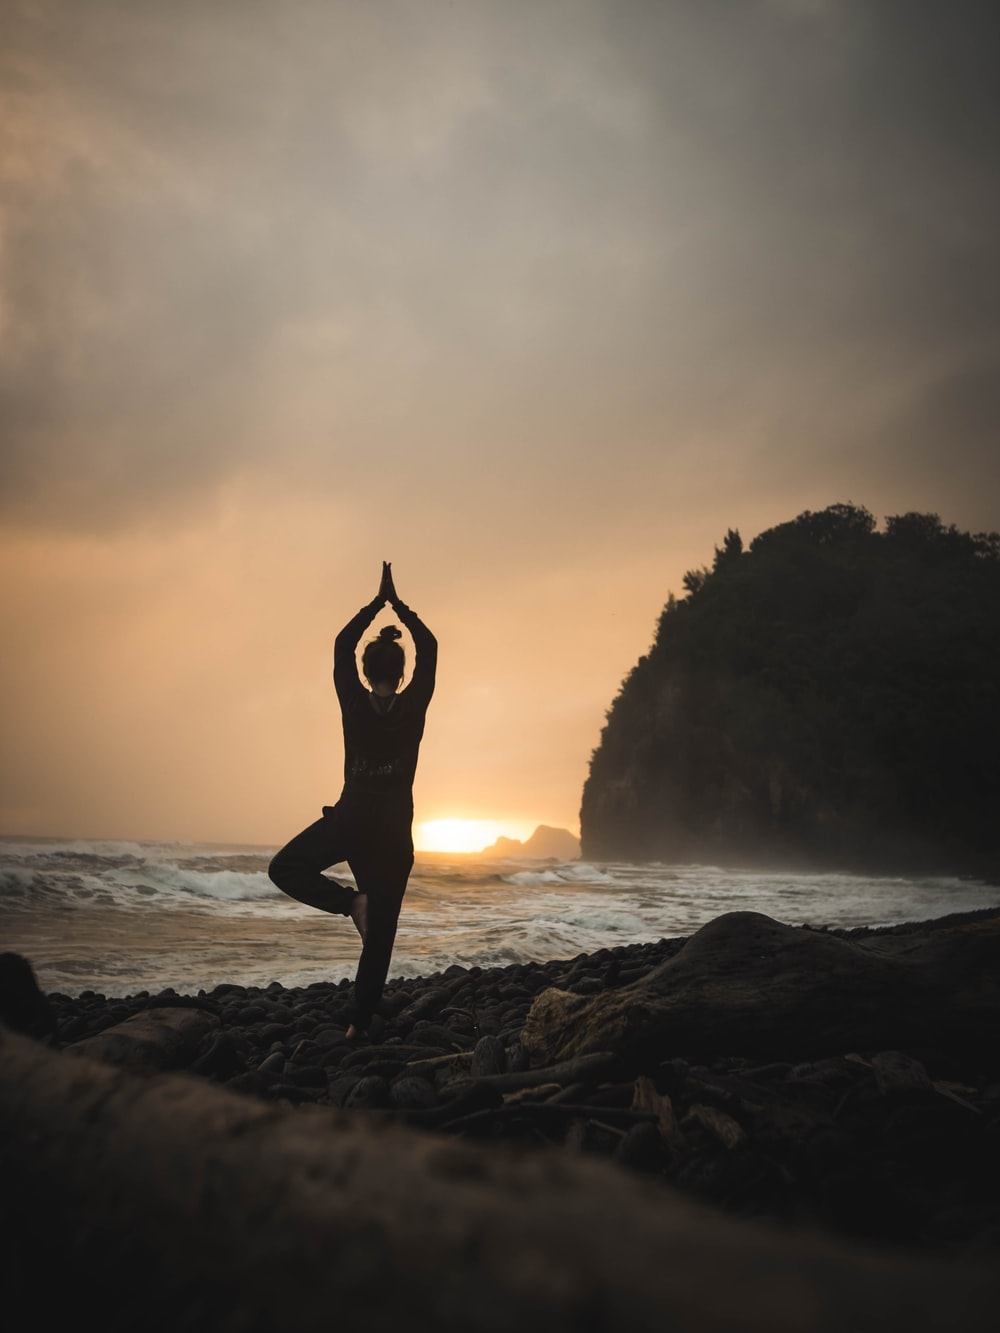 woman doing one-foot yoga stance at the beach under grey sky